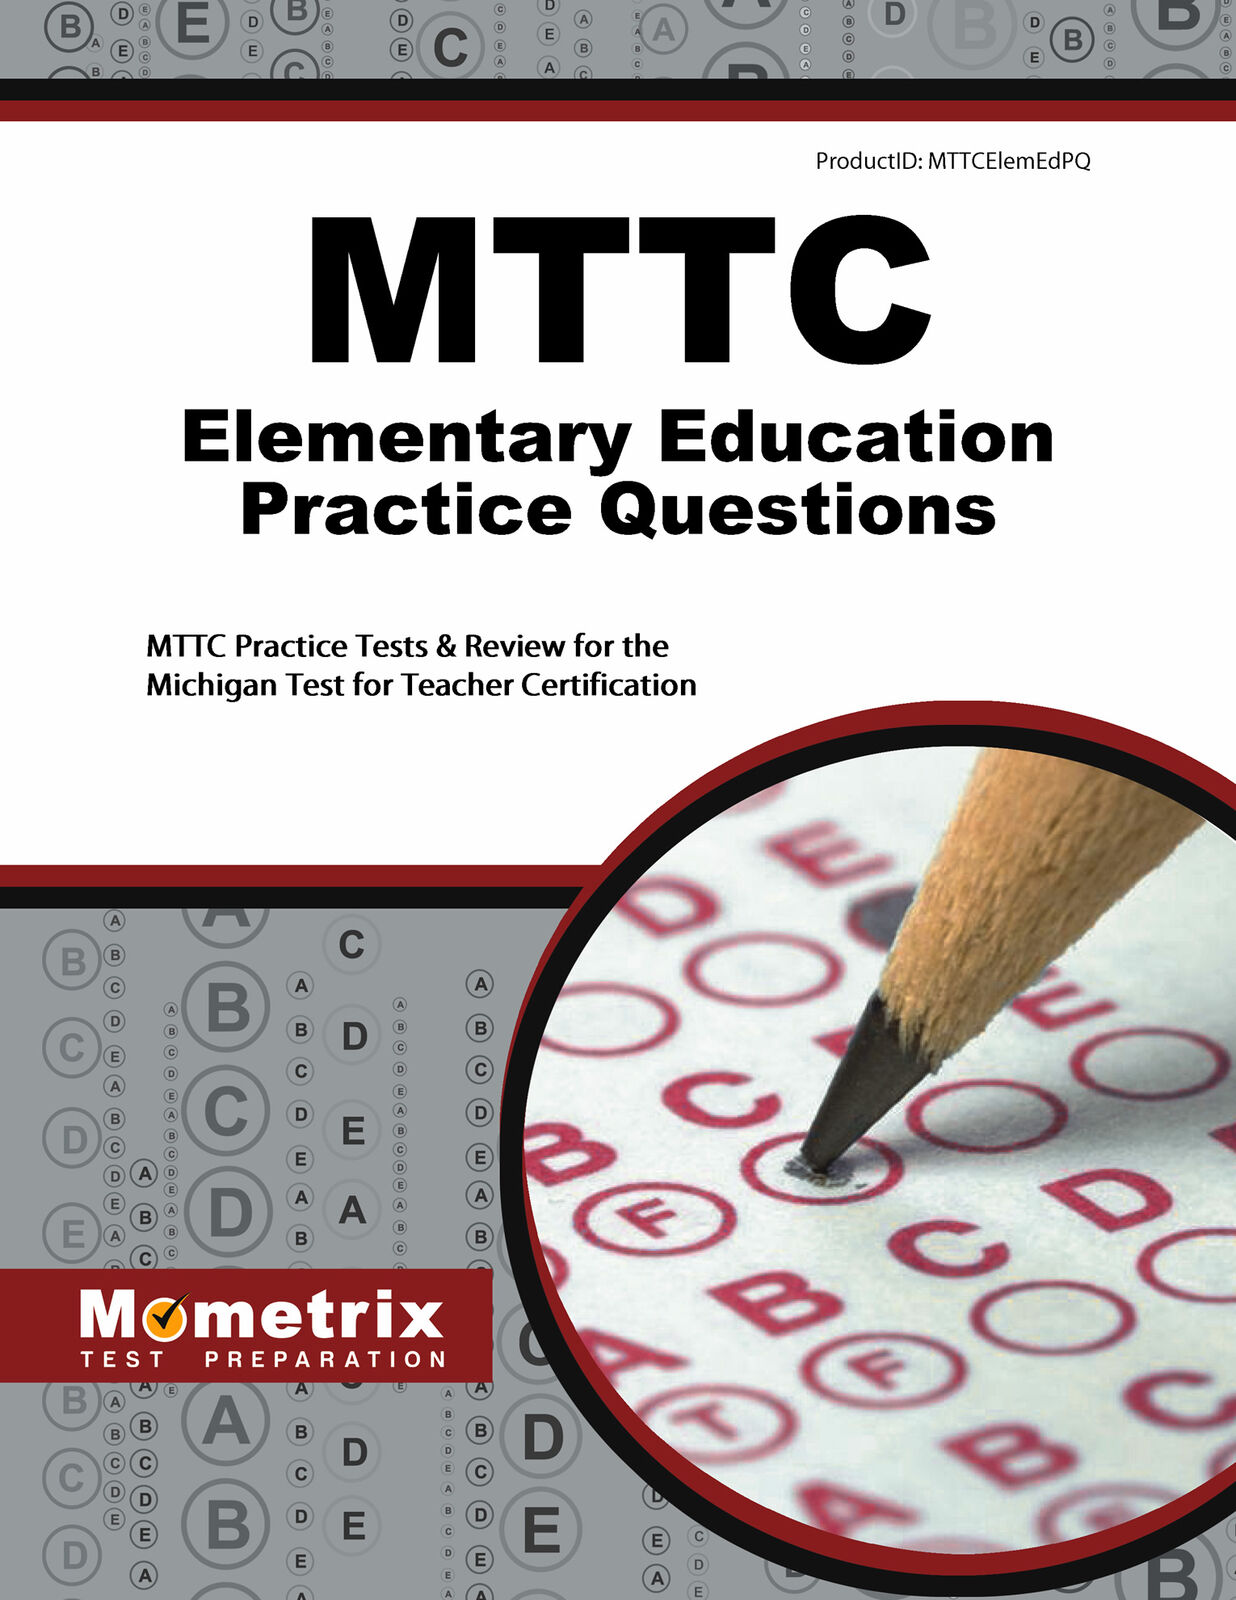 Mttc Elementary Education Practice Questions Mttc Practice Tests